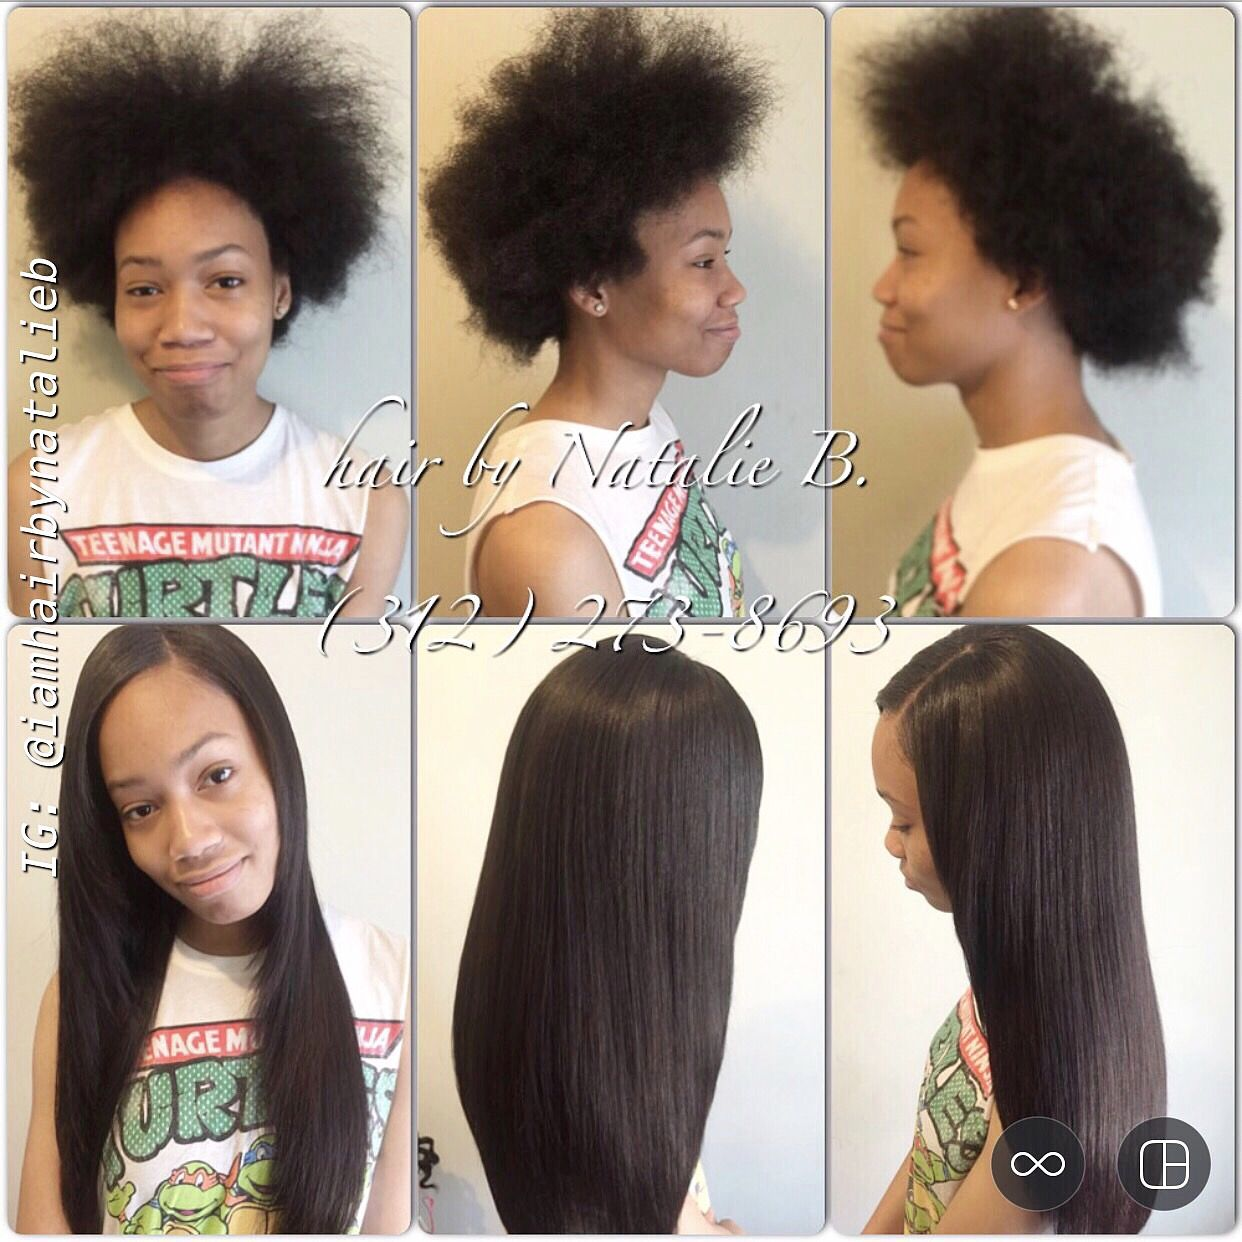 Traditional sew in hair weave by natalie b client has natural traditional sew in hair weave by natalie b client has natural hair pmusecretfo Images